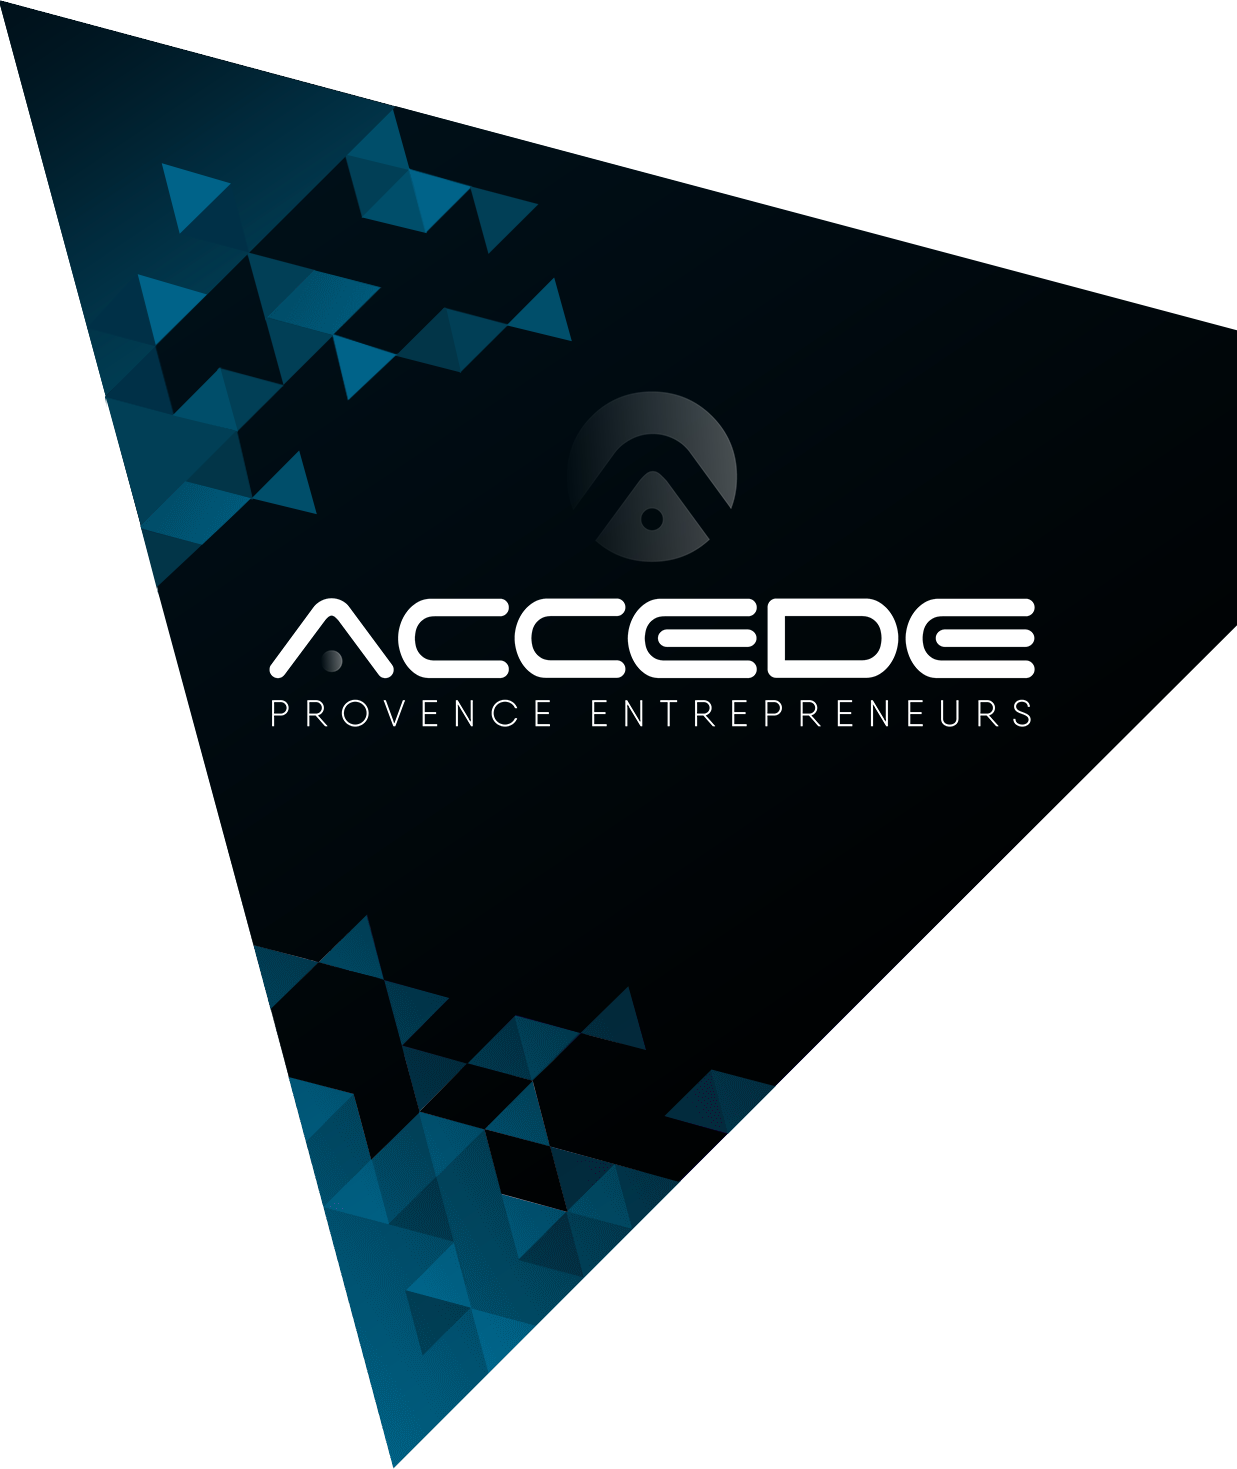 https://accede-provence-entrepreneurs.com/wp-content/uploads/2021/06/triangle-accede.png